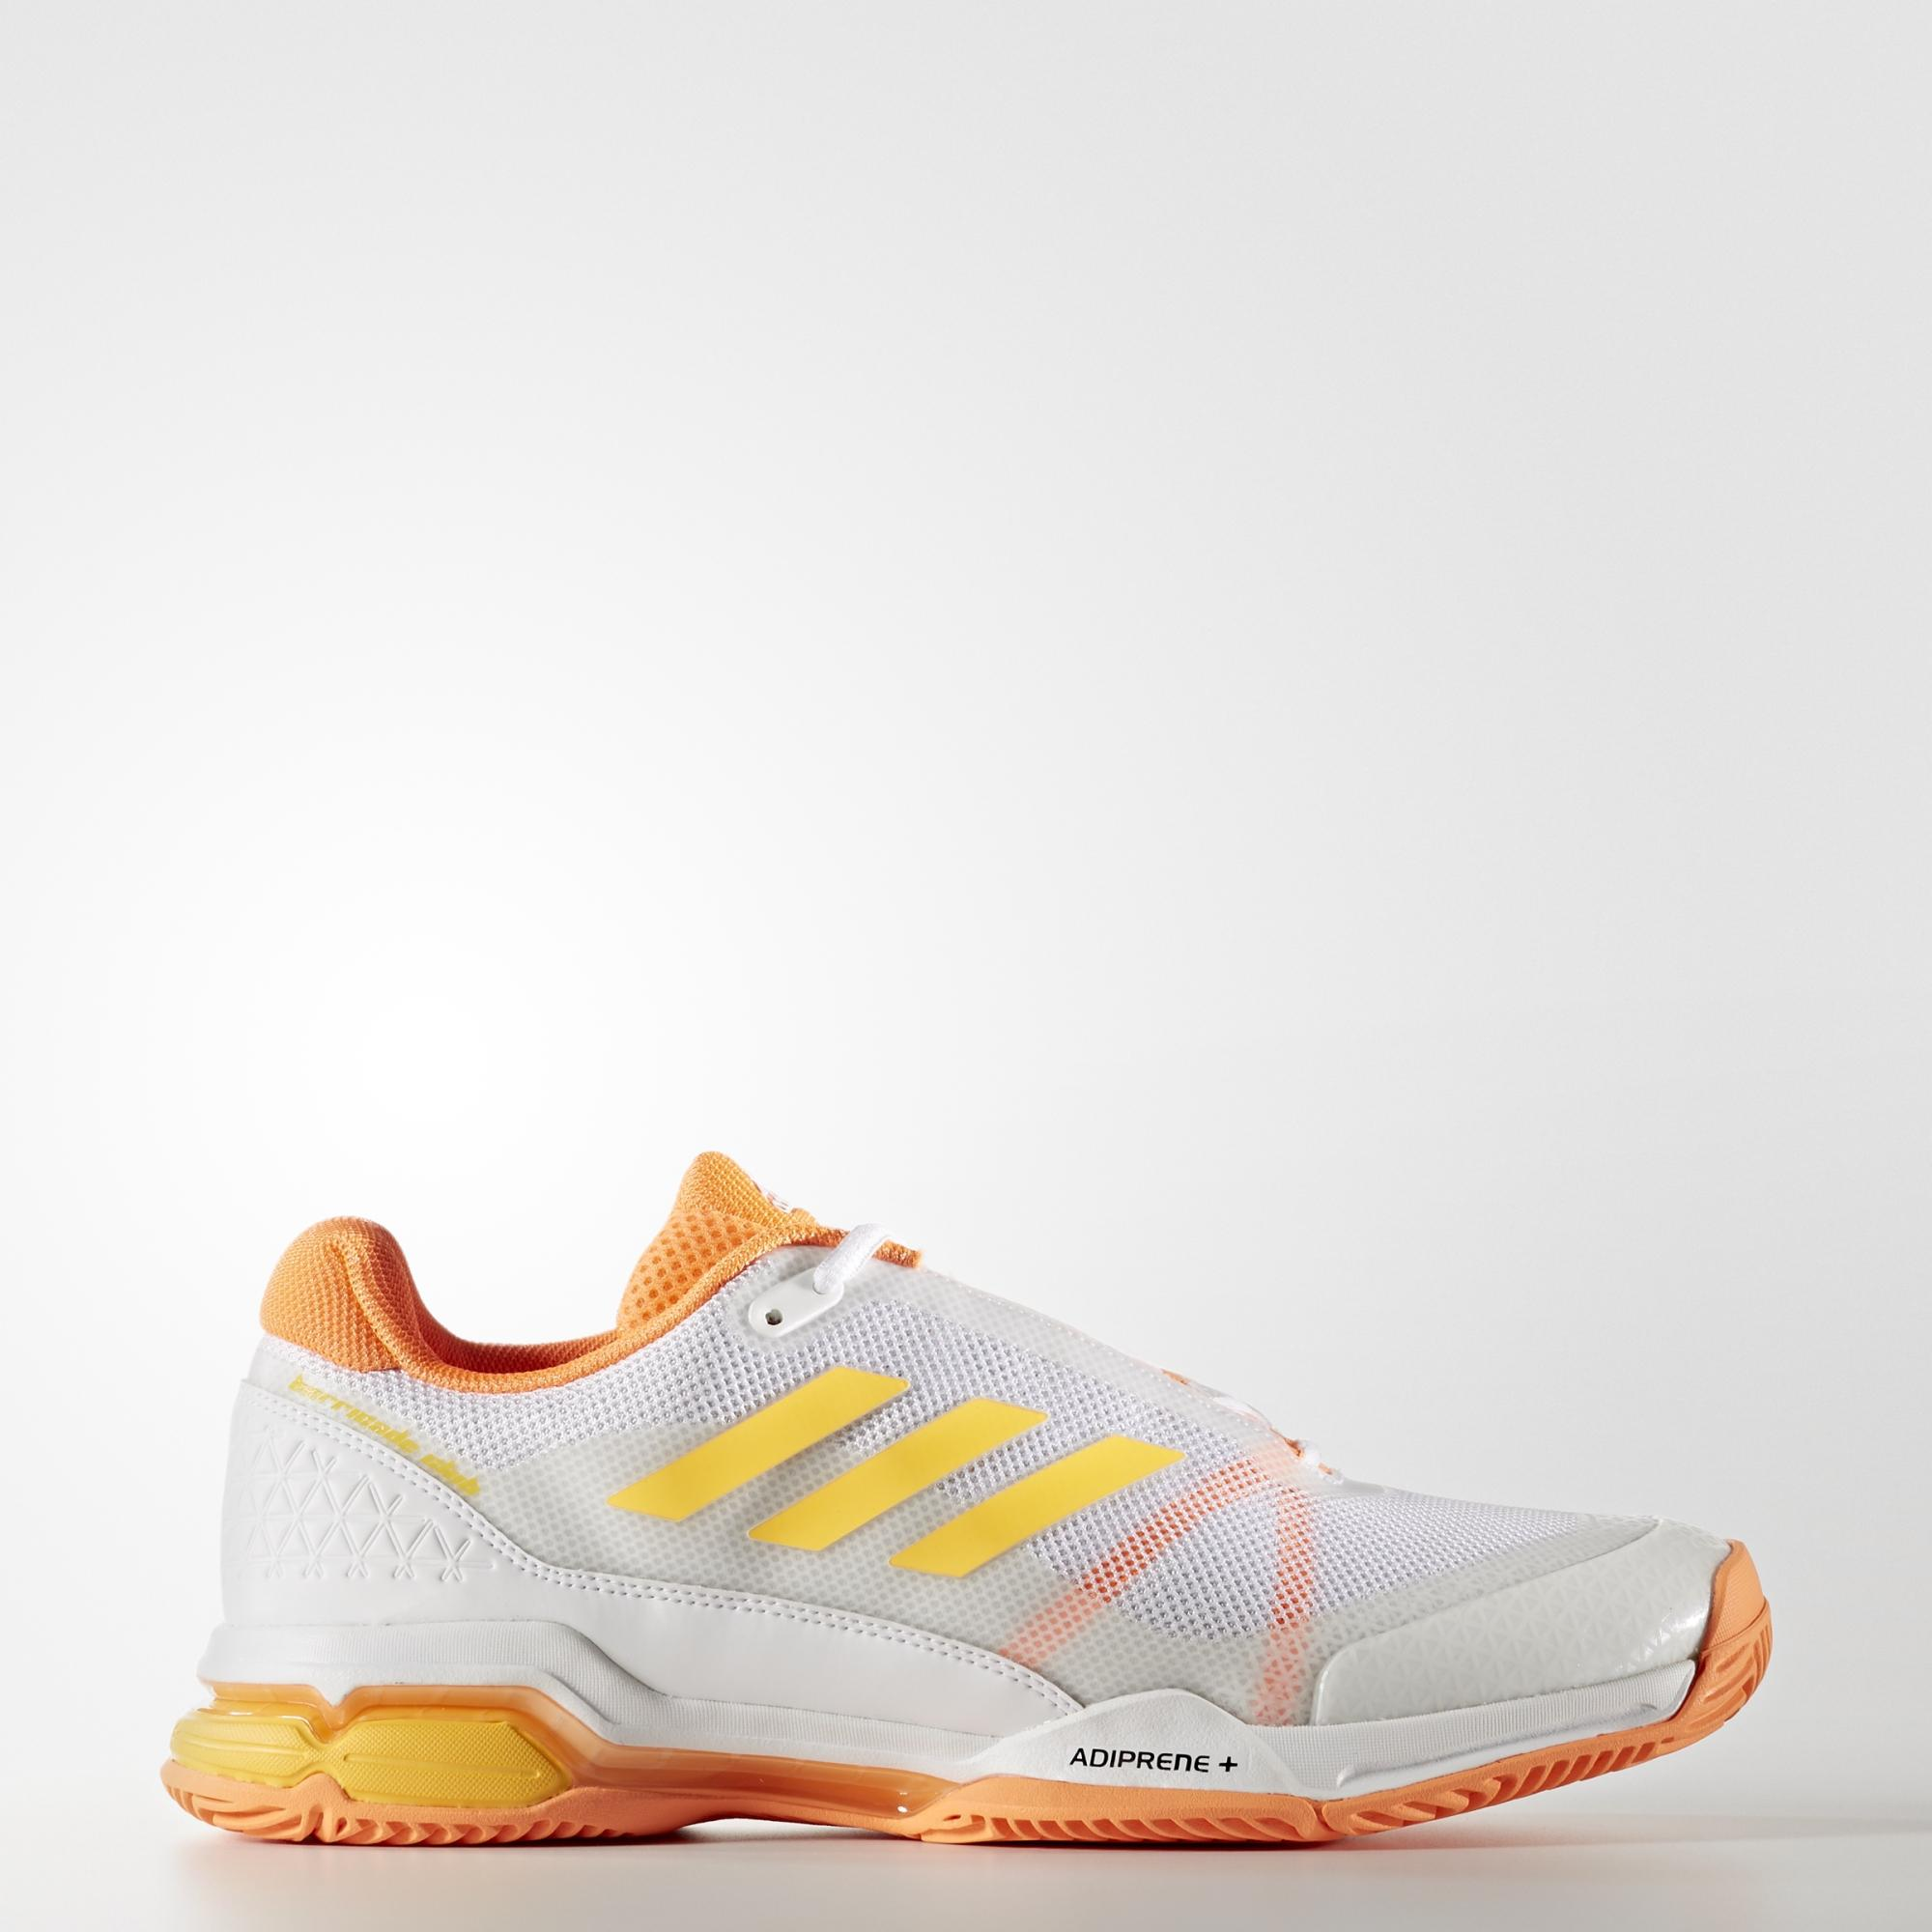 new style 5b80e d290a Adidas Mens Barricade Club (2017) Tennis Shoes - WhiteSolar Gold -  Tennisnuts.com